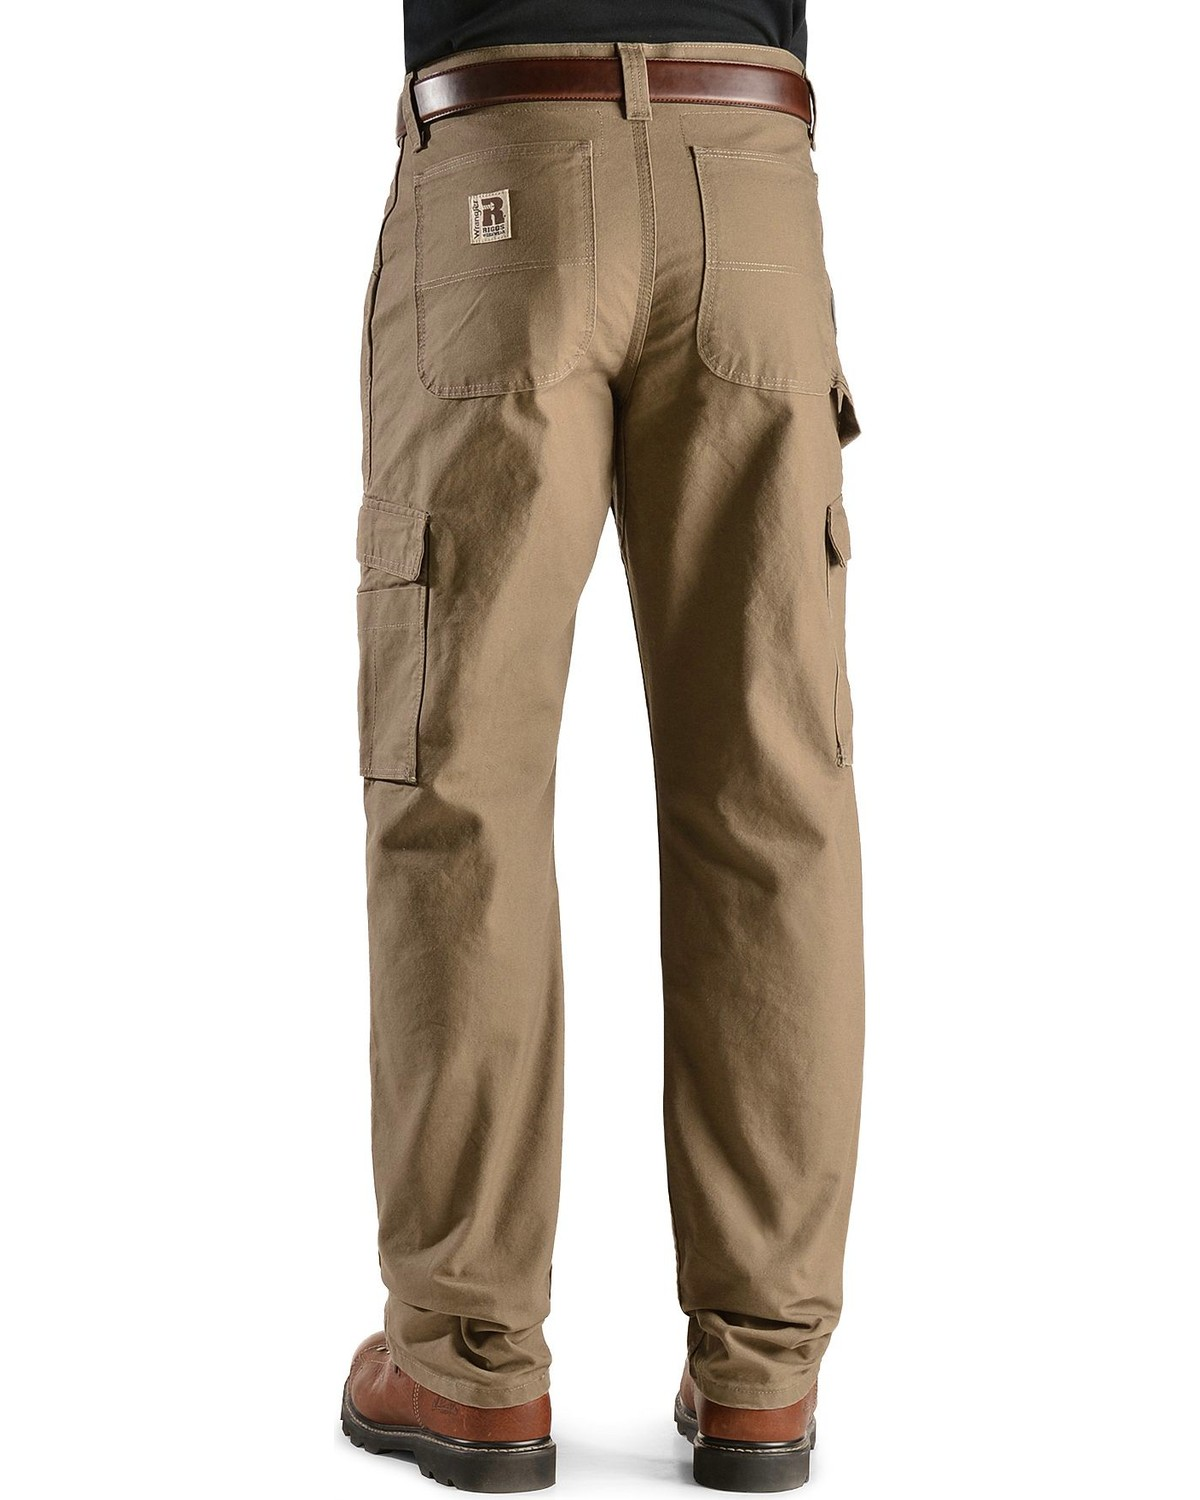 d7813a24bb6670 Zoomed Image Wrangler Riggs Cordura Canvas Work Pants, , hi-res